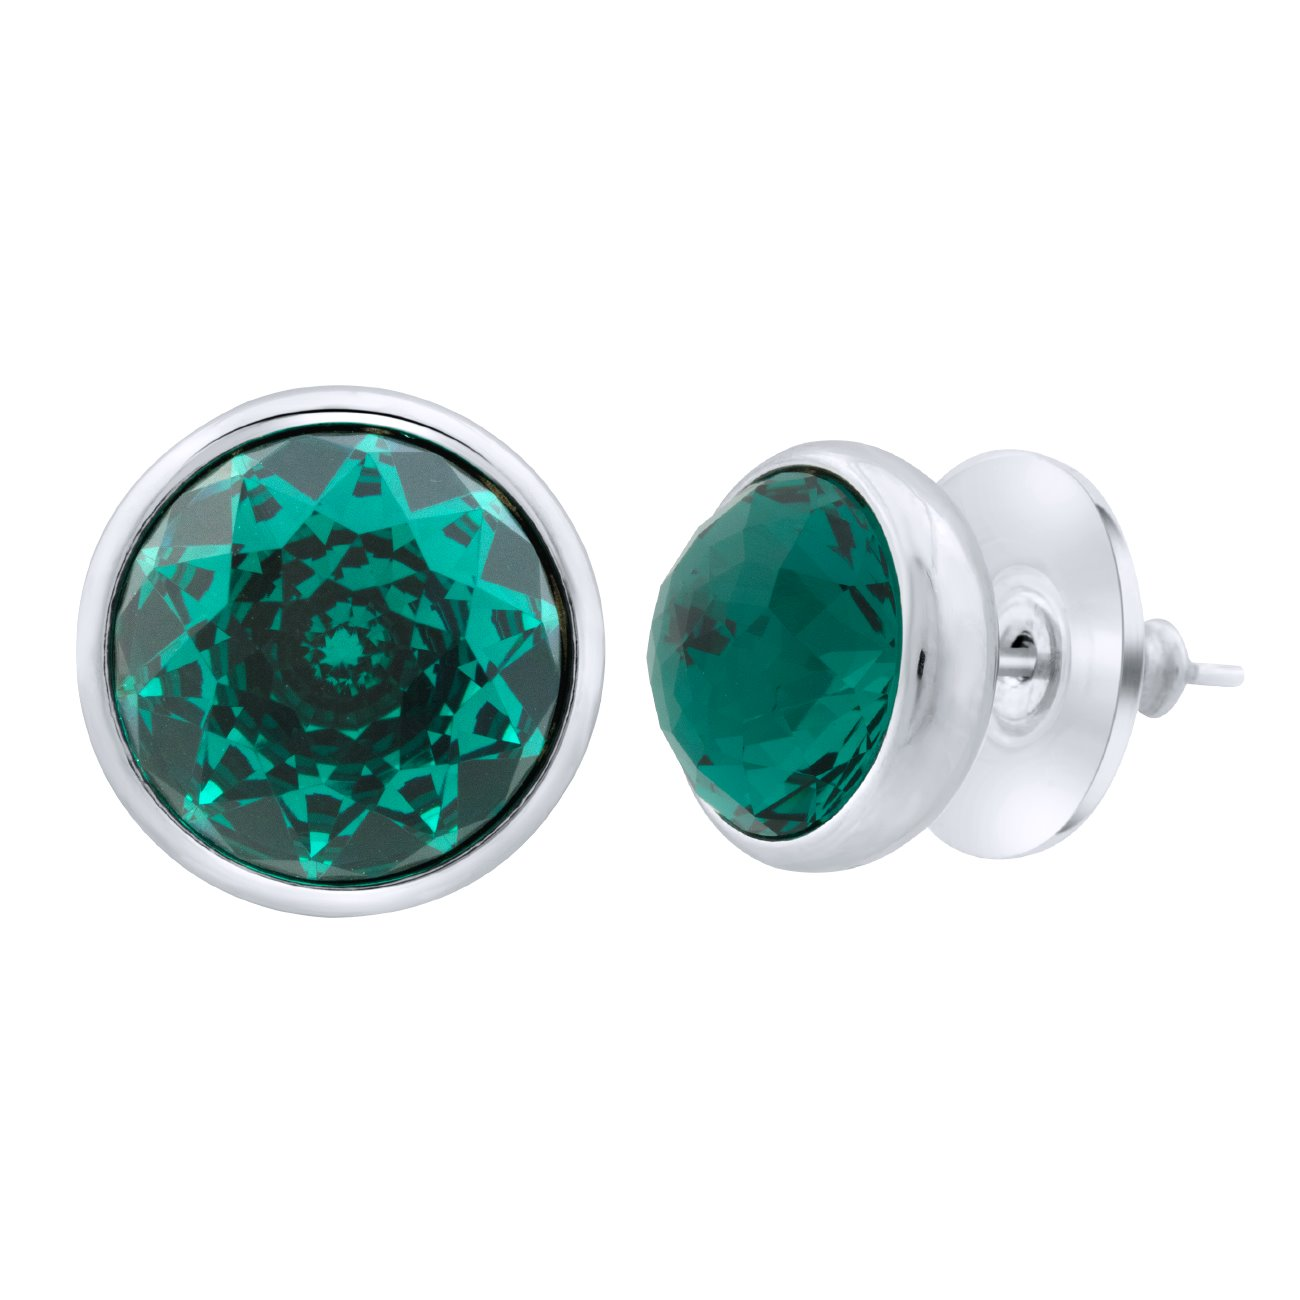 Elysees Stud Earrings Silver Emerald JOY OF SPARKLE FOREVER CRYSTALS